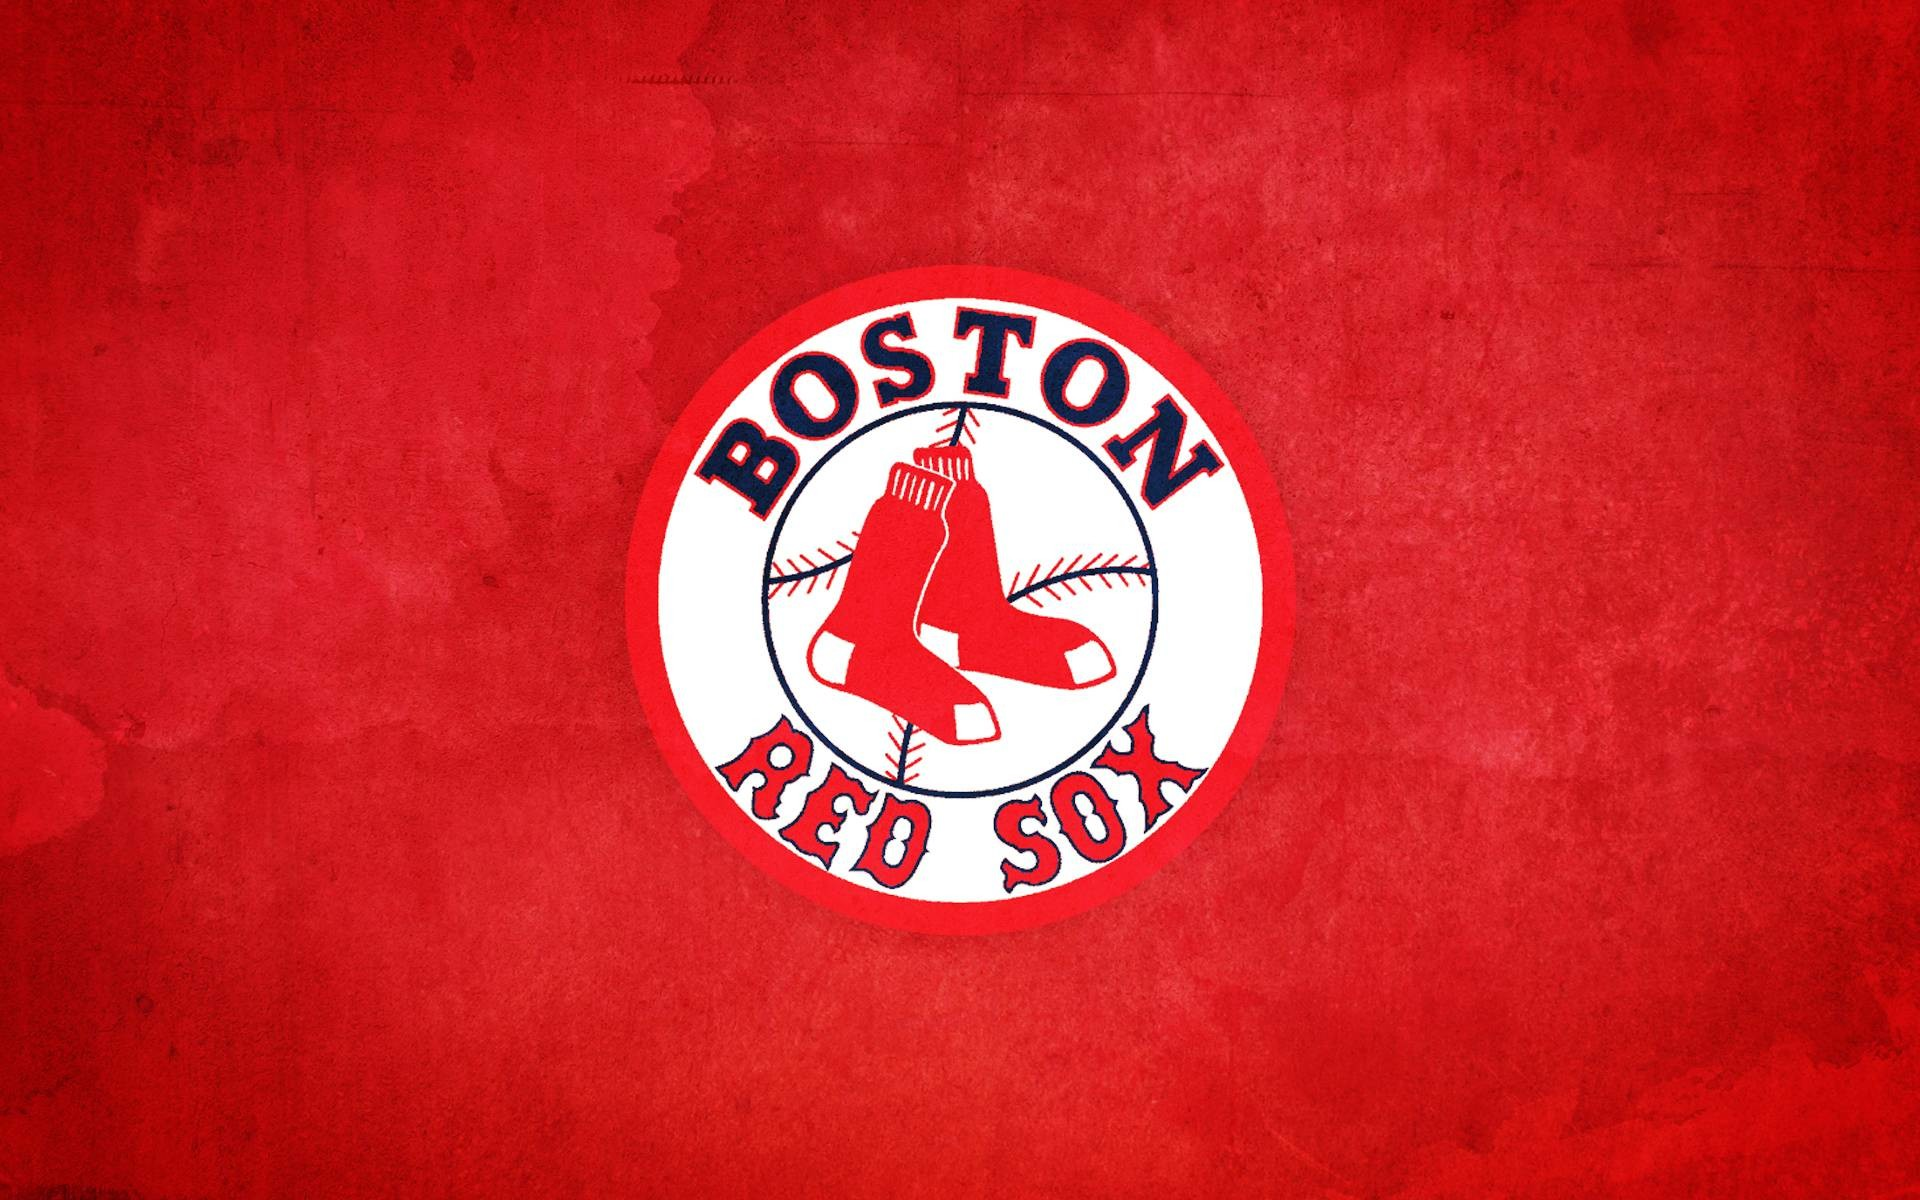 1920x1200 Boston Red Sox Wallpapers